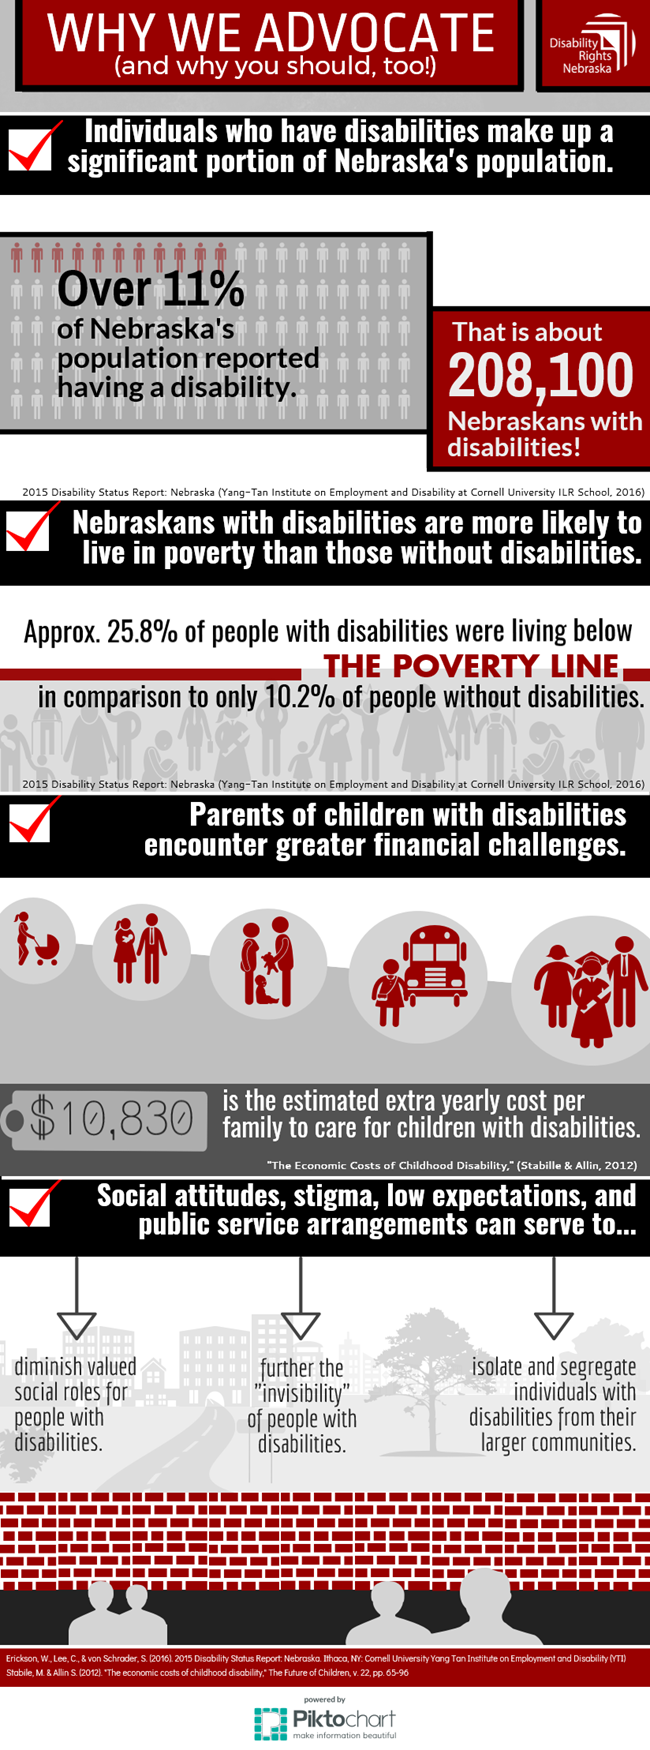 Why we advocate infographic from 2015